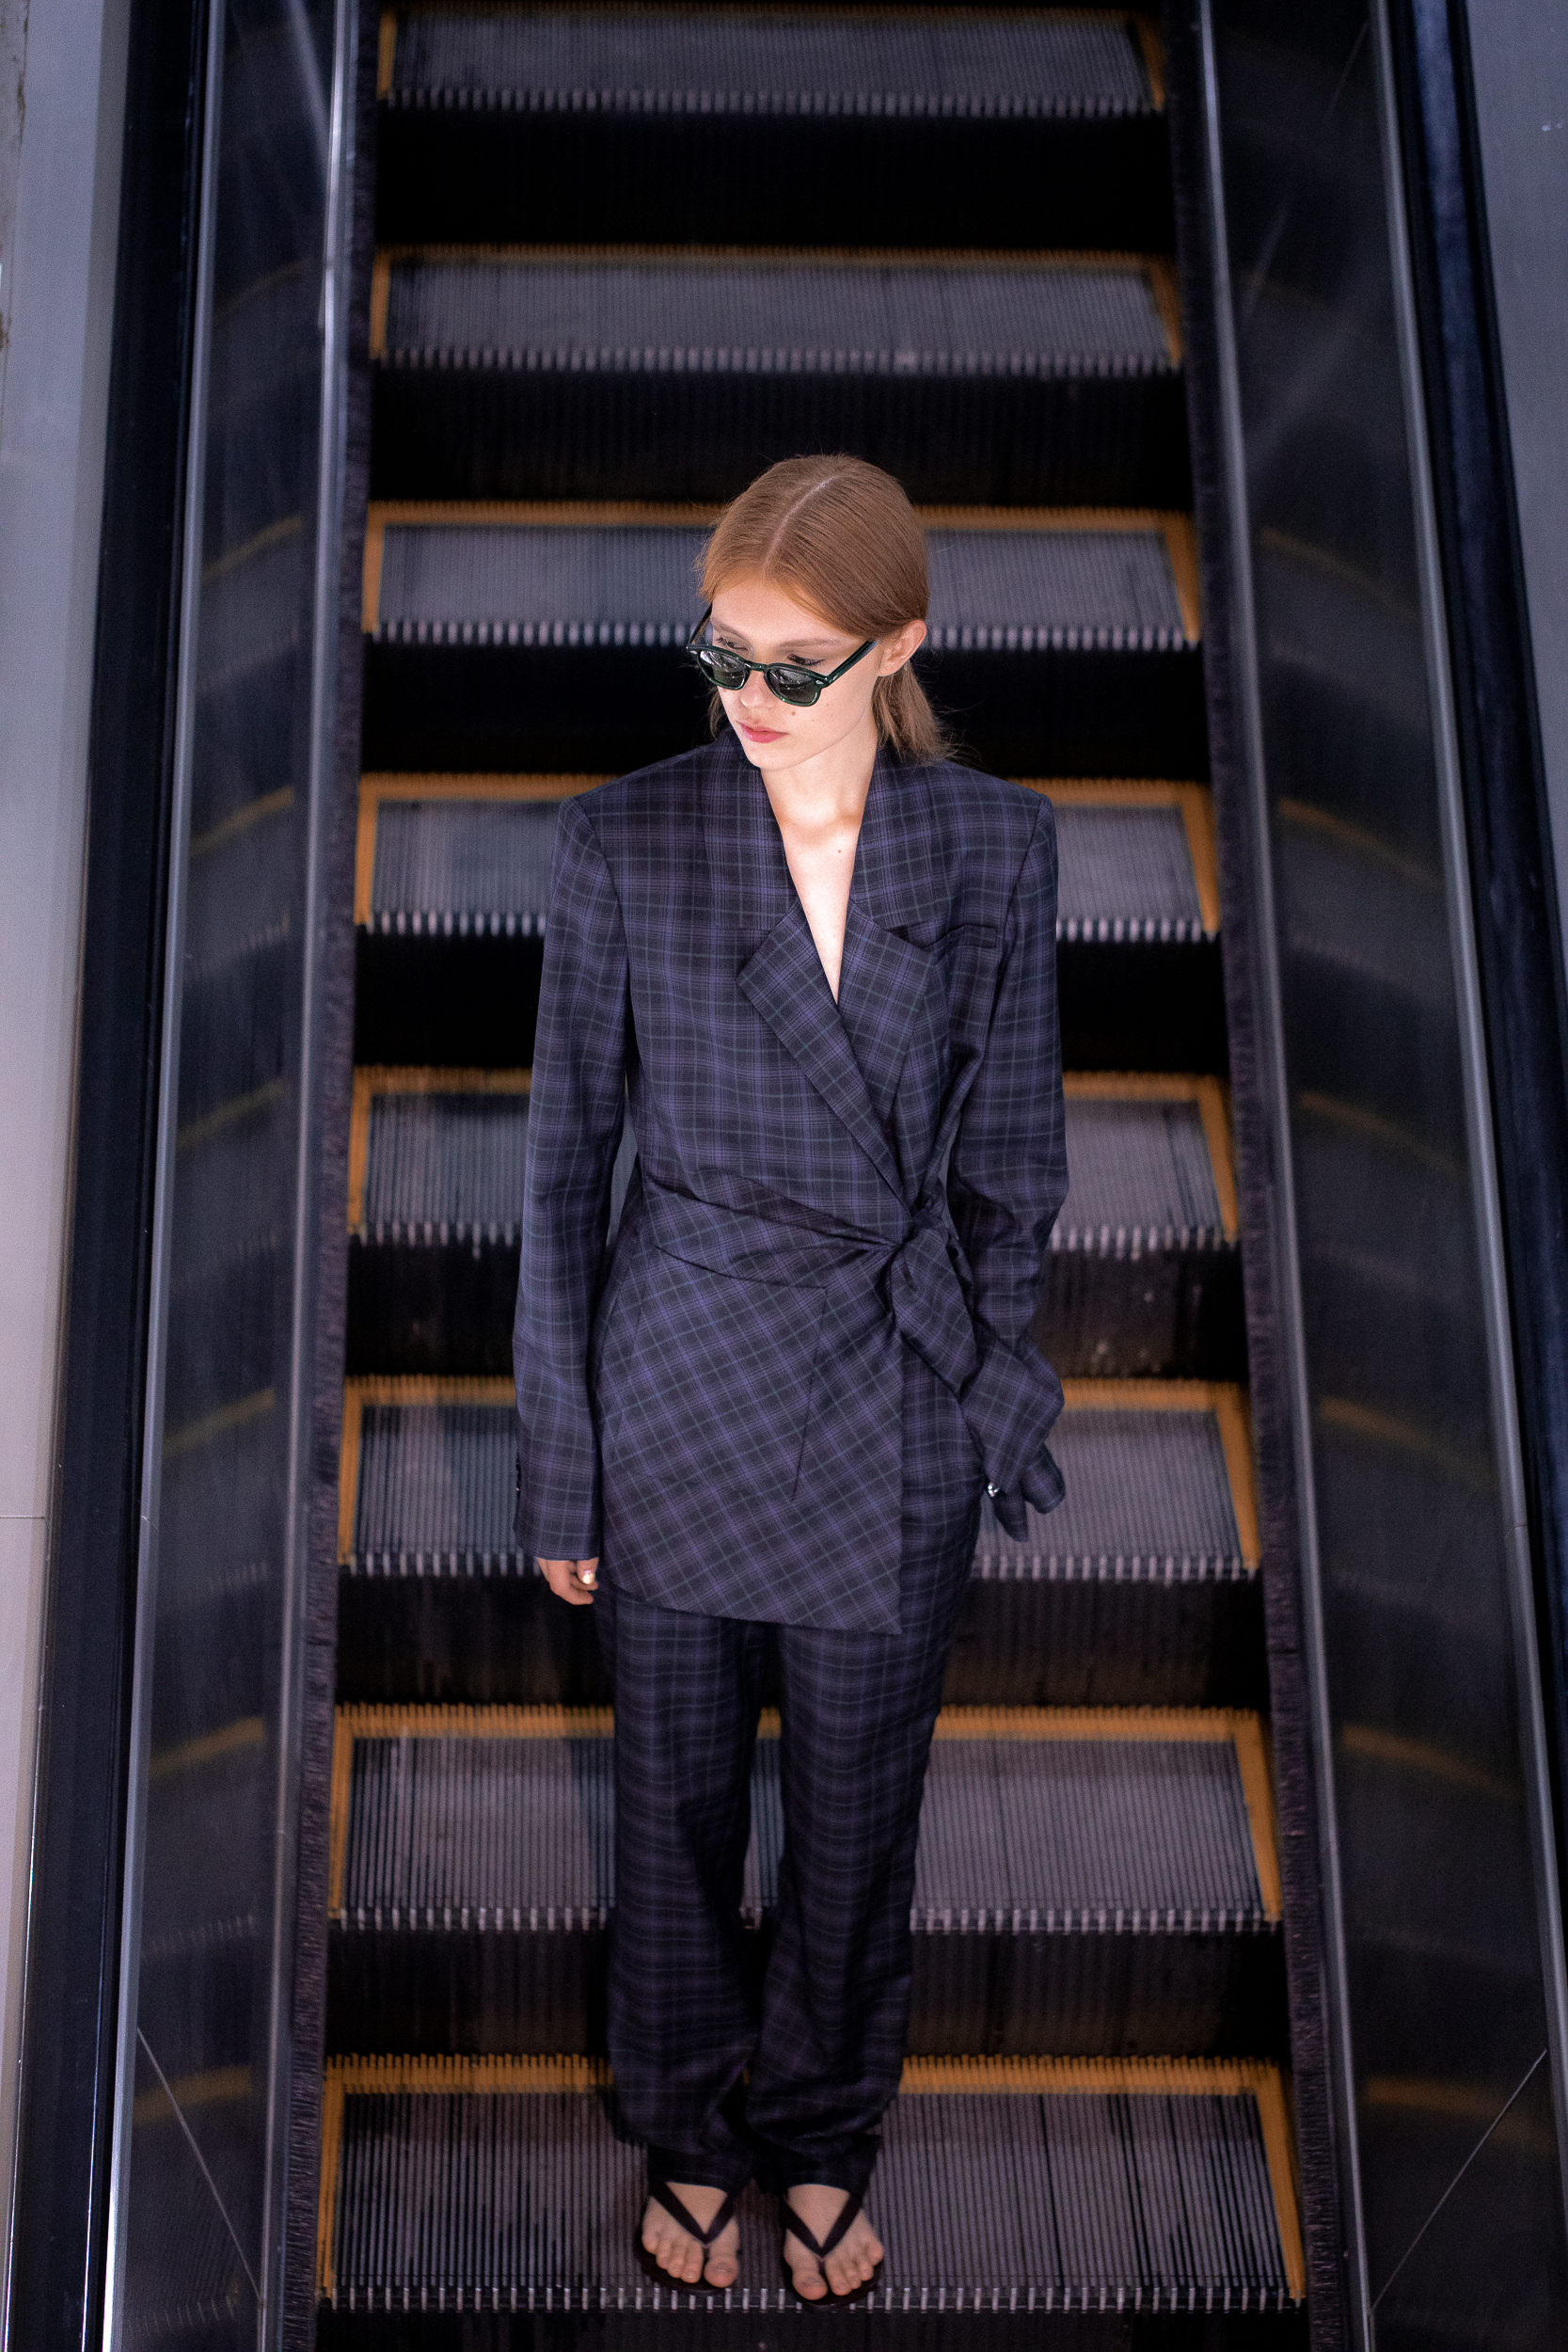 Tibi SS 2019 | Sunglasses, a Collaboration with Moscot | Yeva Podurian